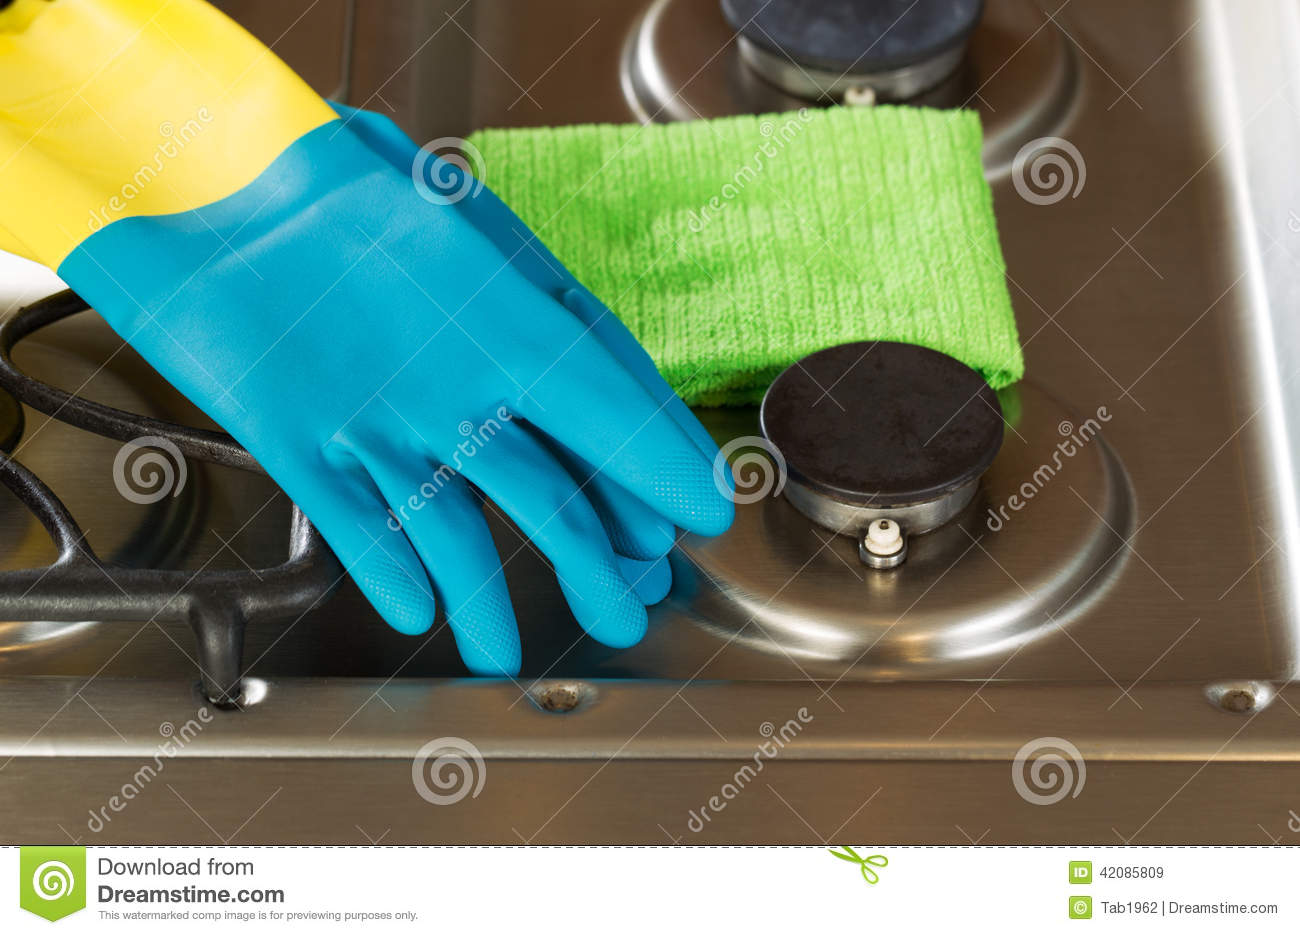 Cleaning Accessories On Top Of Stove Top Range Stock Photo - Image ...